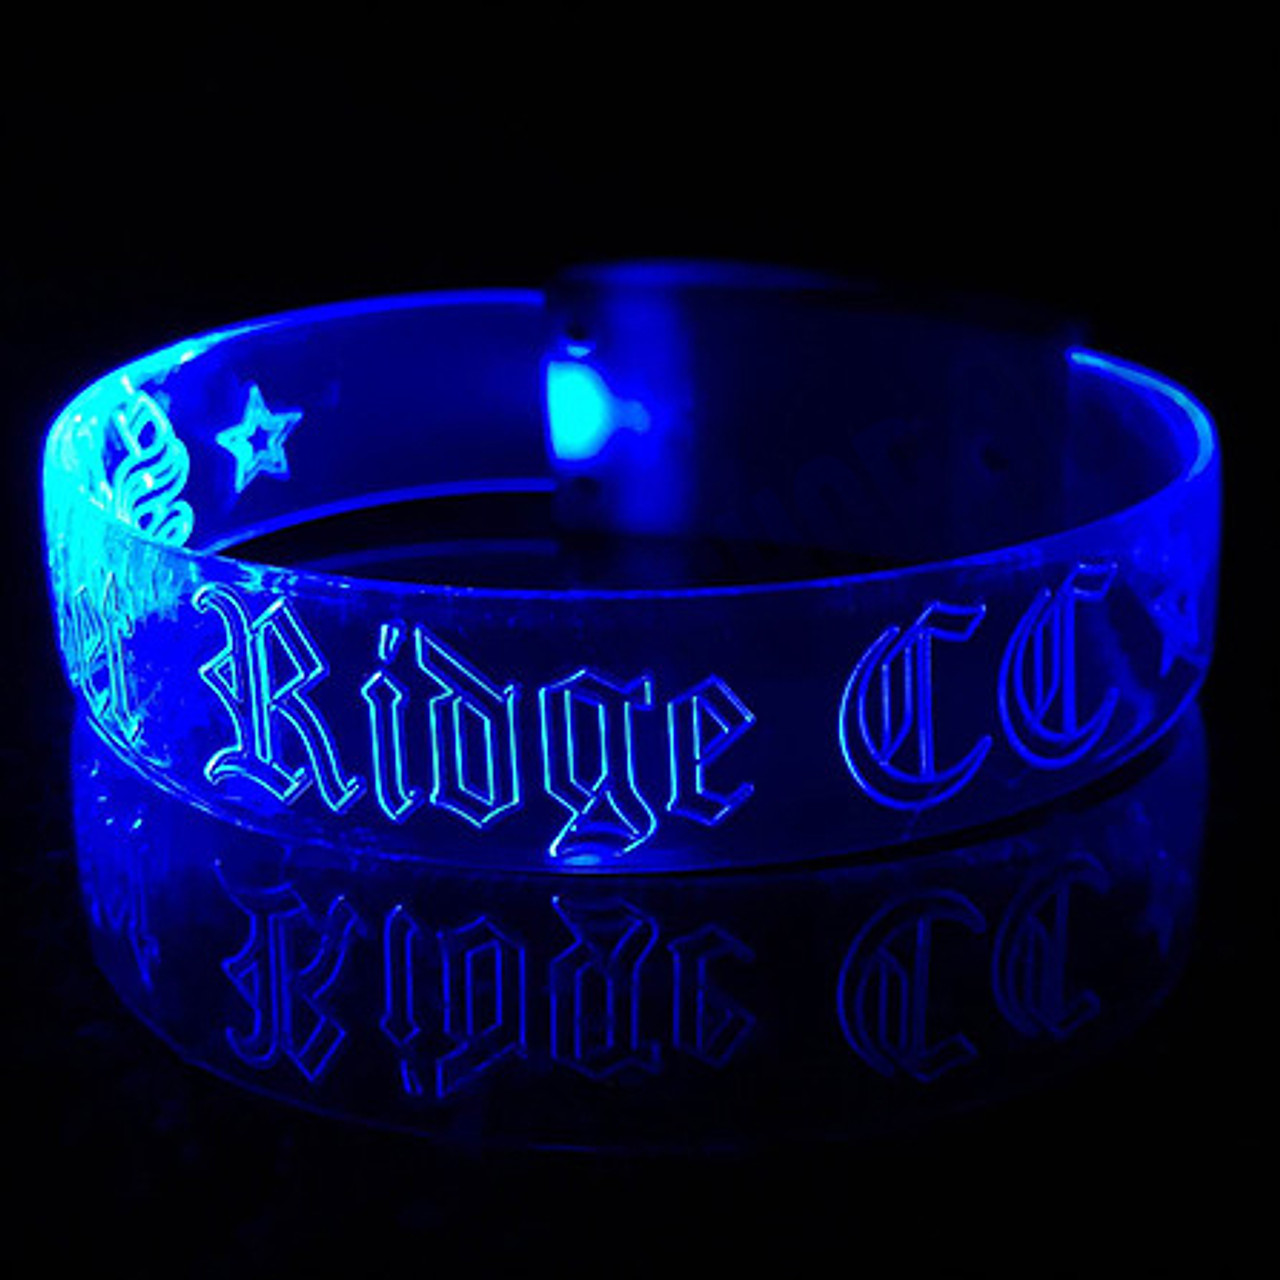 LED, wristband, wholesale, pricing, bulk, LED Bands, Band, personalized, custom, brandingLED, bride, groom, Light up, Light, Iluminated, Glow, Wristband, wrist Band, Bracelet, Band, Personalized, Custom, LED Wristband, VIP, Logo, Name